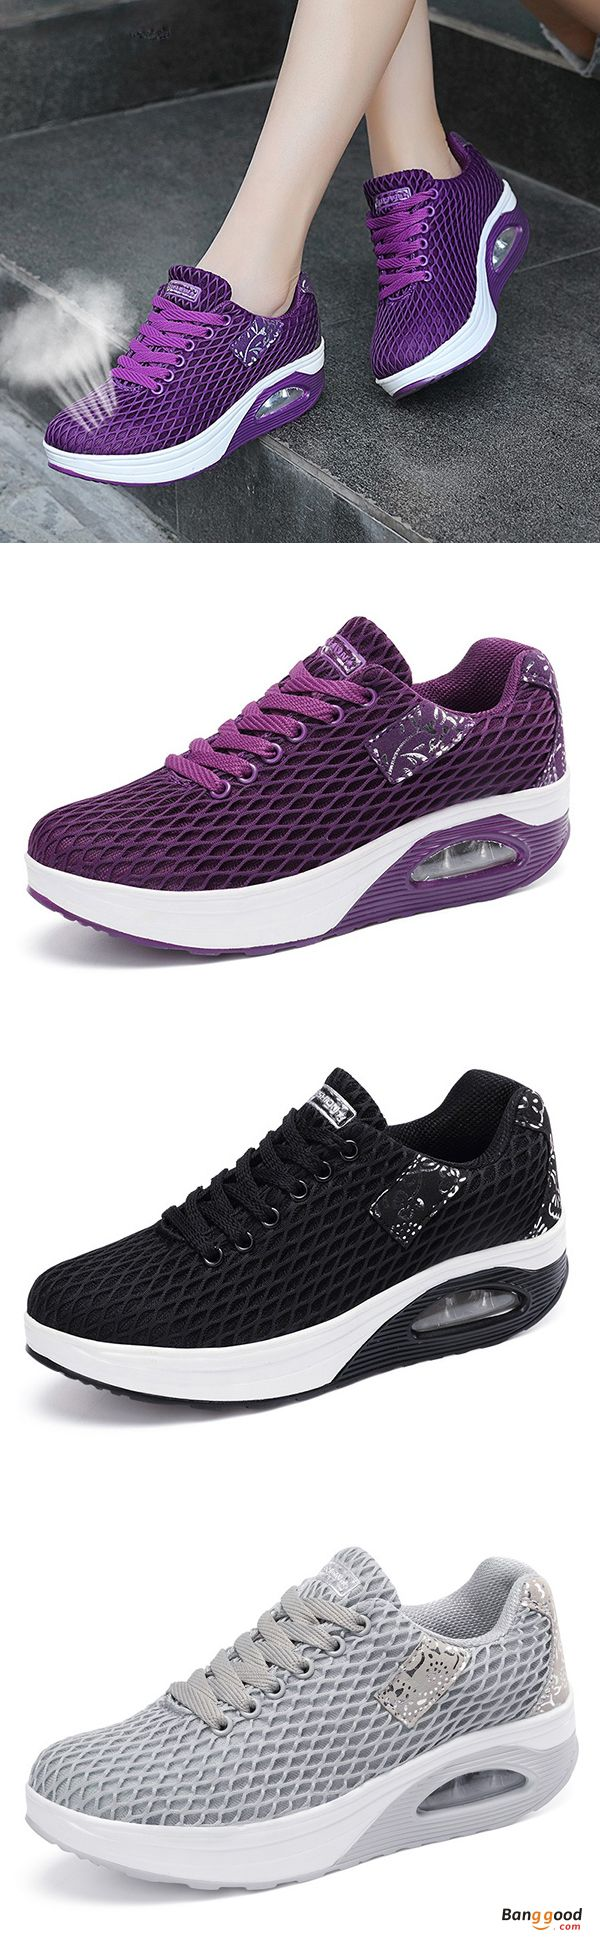 US$29.99 + Free shipping. Size: 5-9. Color: Black, Purple, Gray. Fall in love with casual and sport style! Women Breathable Platform Rocker Sole Mesh Lace Up Trainers.